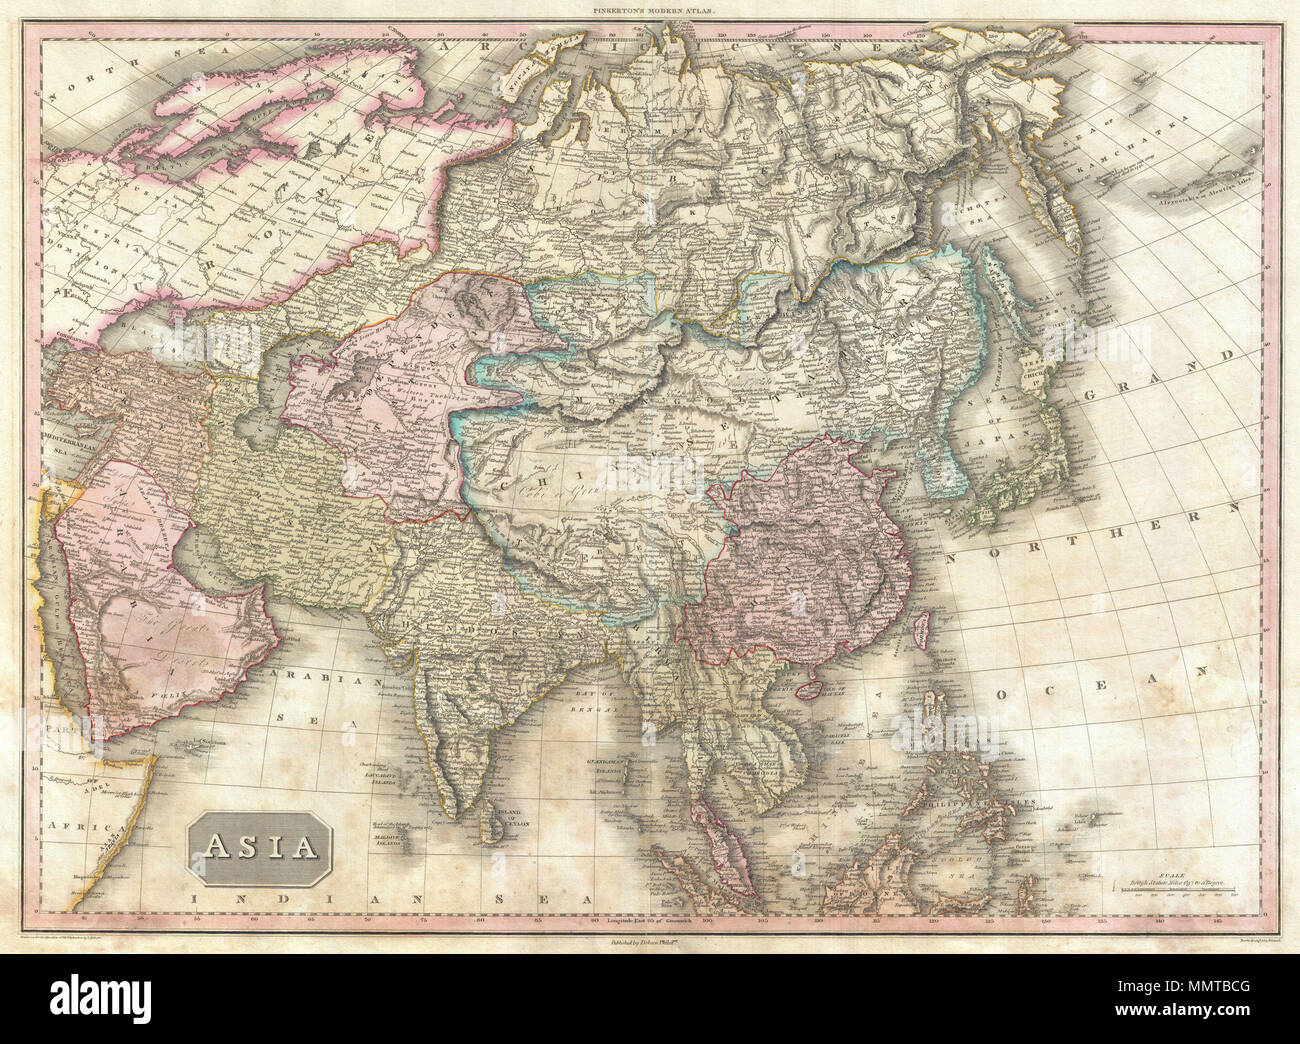 Map Of Asia Rivers And Seas.English This Is John Pinkerton S Stunning 1818 Map Of Asia Covers